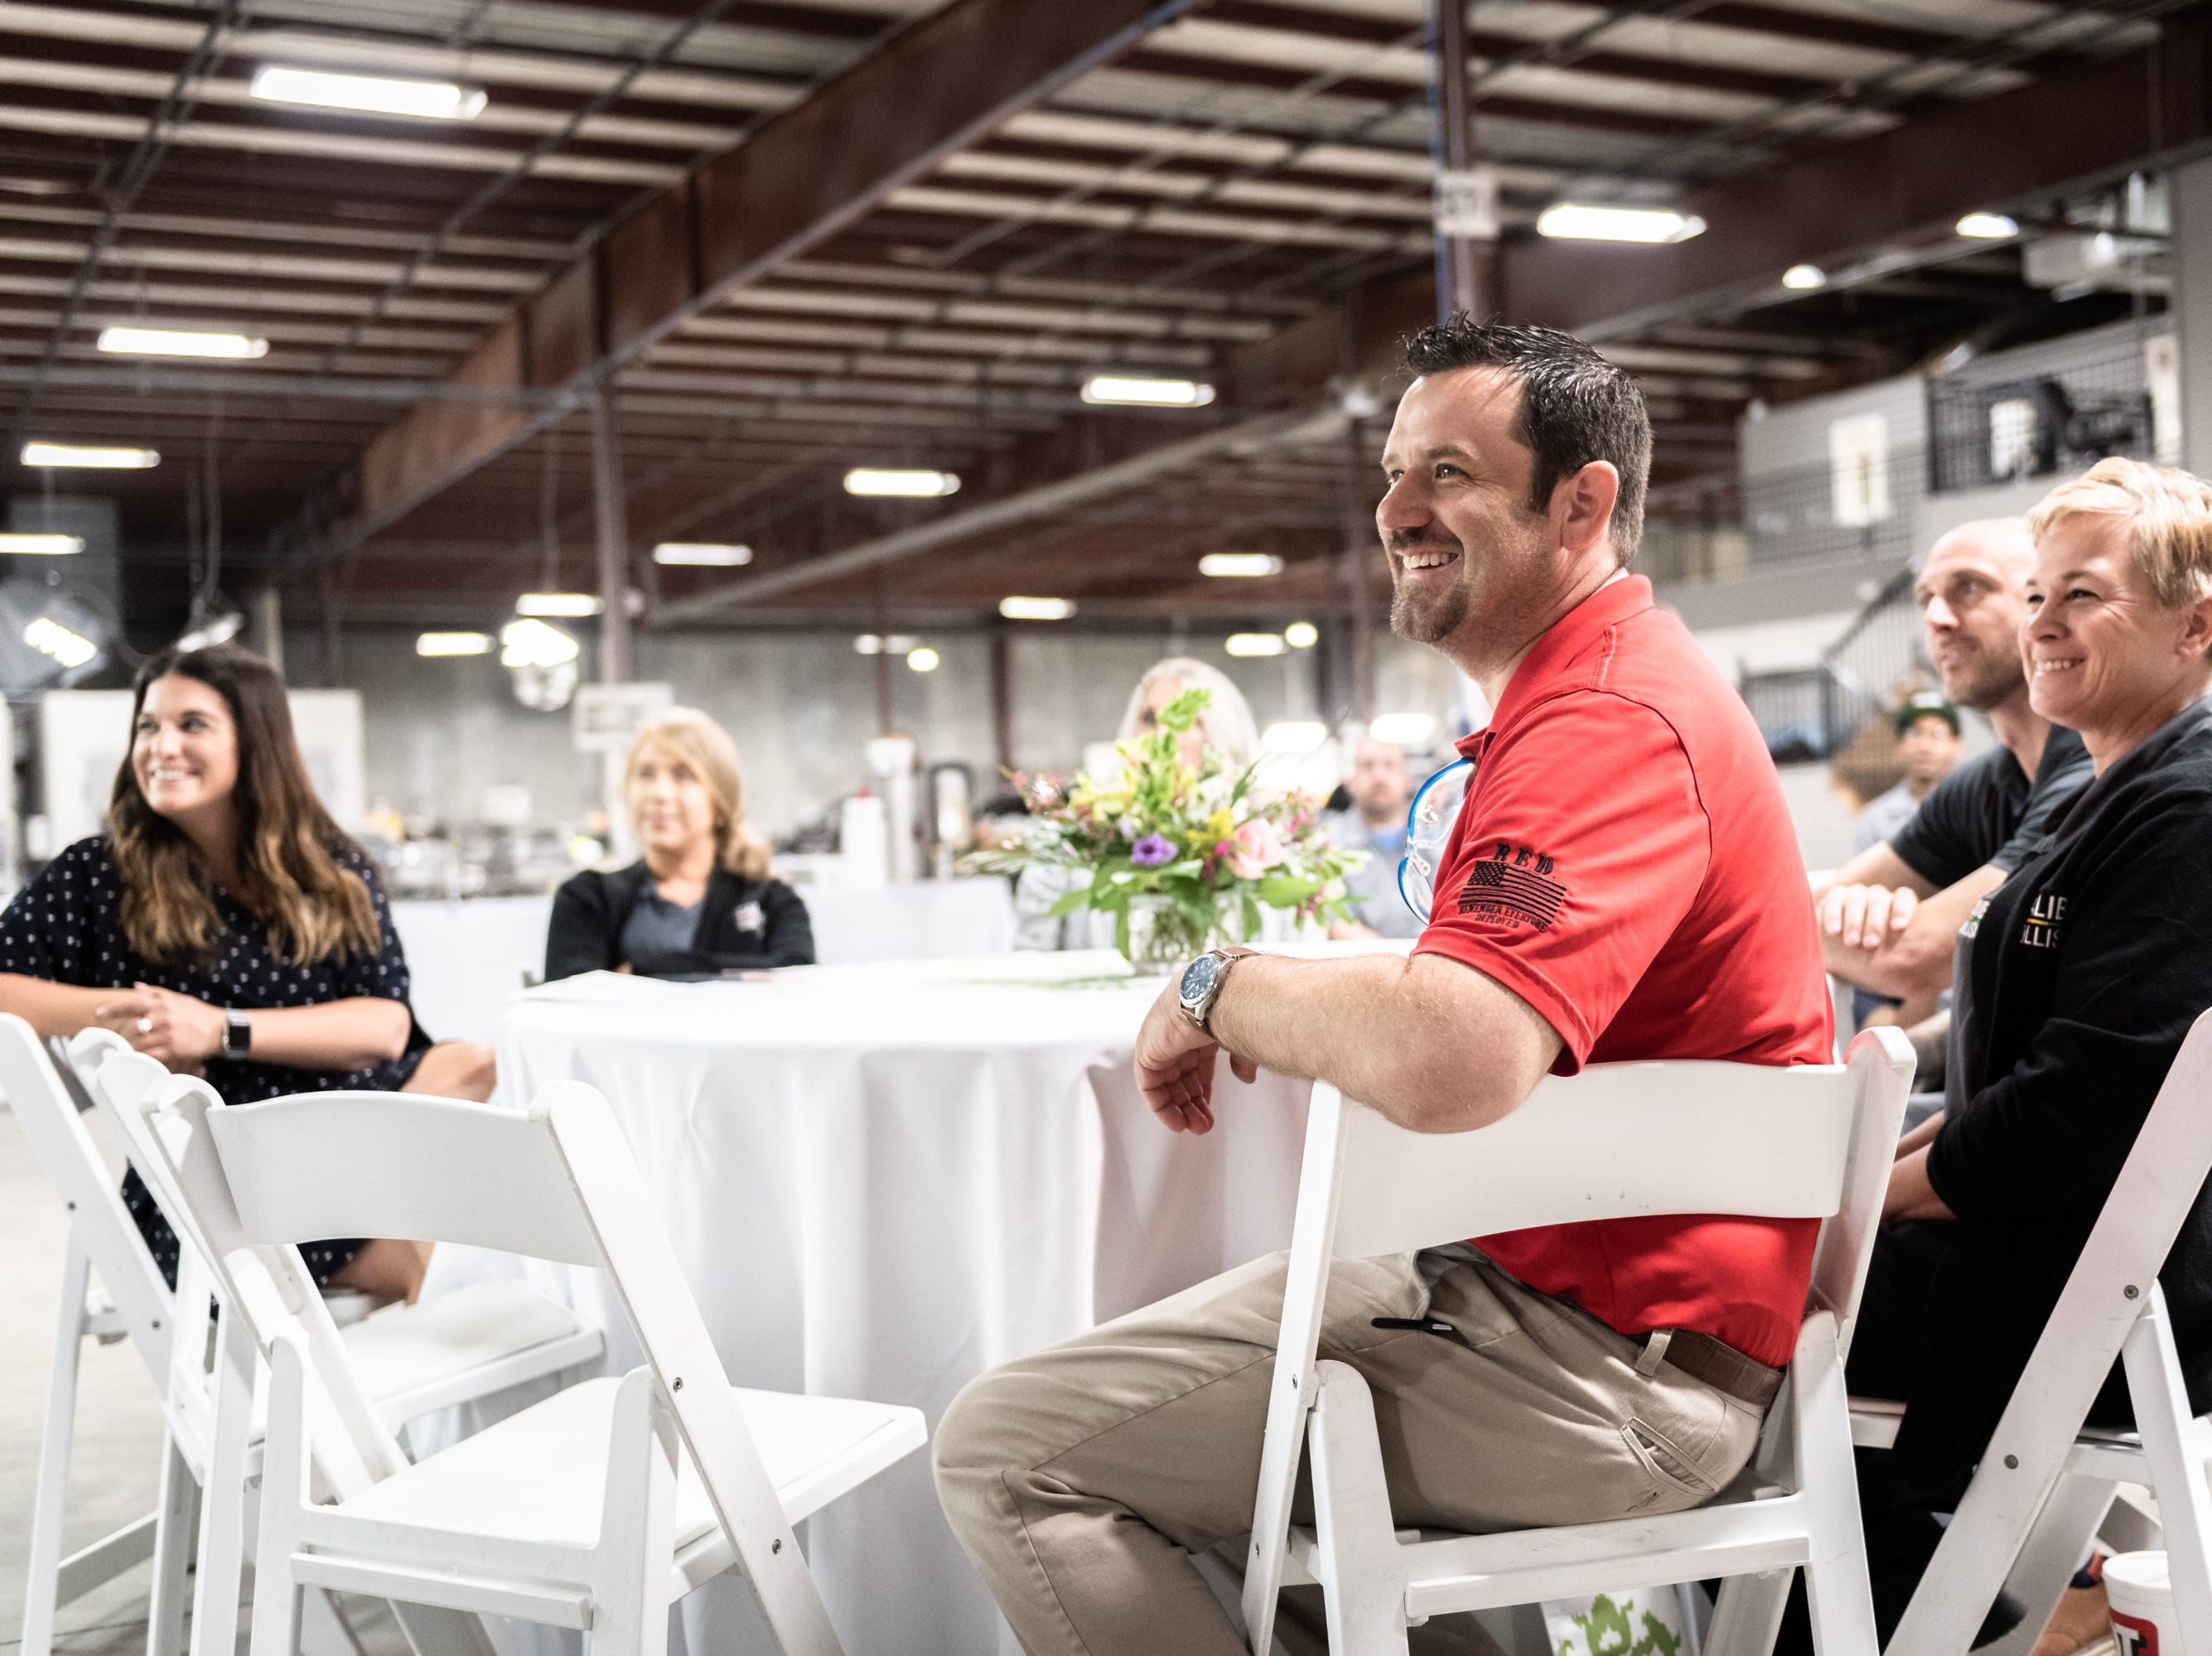 Workers at Caliber Collision on Ridge Road in Greenville, gather for a ceremony Wednesday, May 8, 2019, at which Leah Floyd, 23, a single mother of Anderson, is presented with a 2018 Chevy Cruze as part of their Recycled Rides program. Caliber Collision partners with Geico for the program and worked with local nonprofit, AIM who nominated Floyd as the recipient.